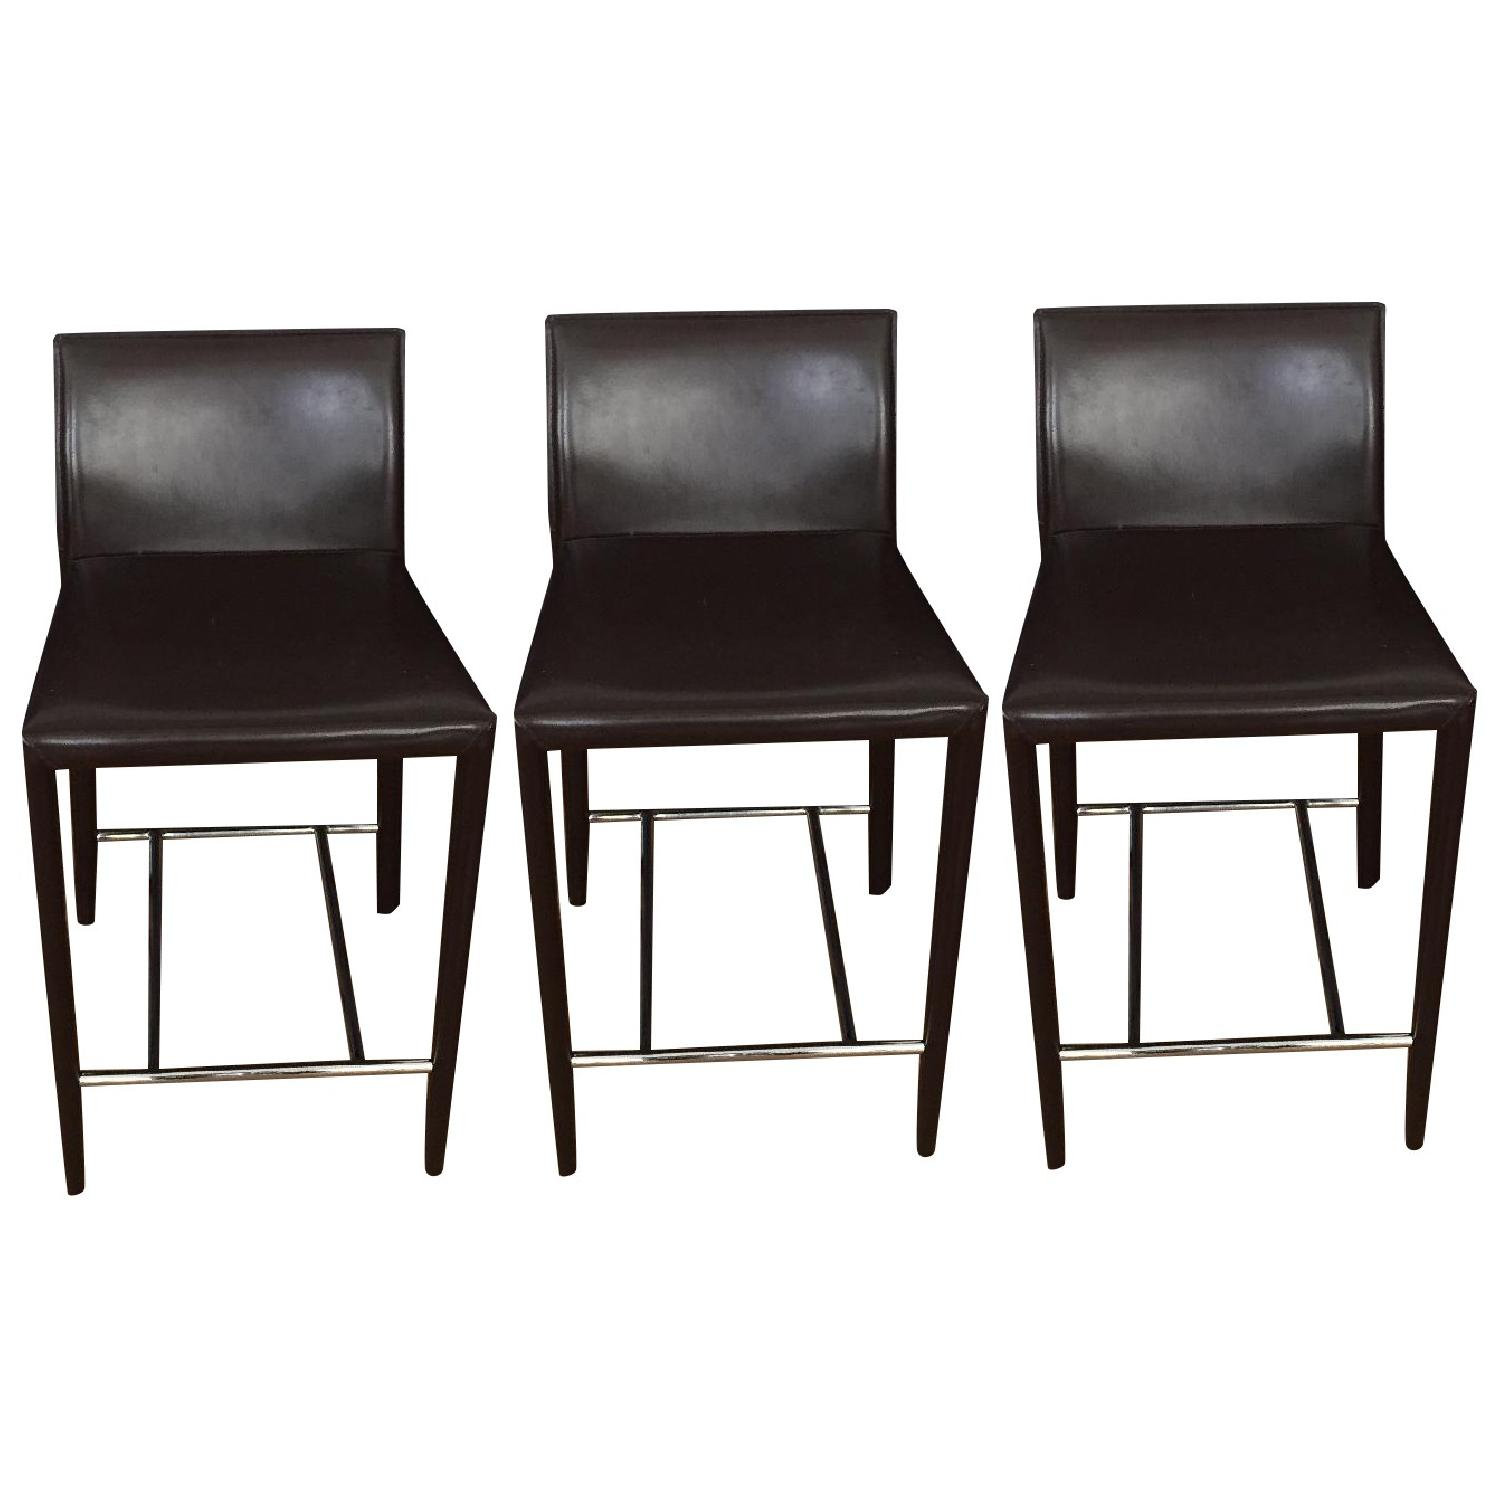 Room & Board Enzo Counter Stool - Set of 3 - image-0